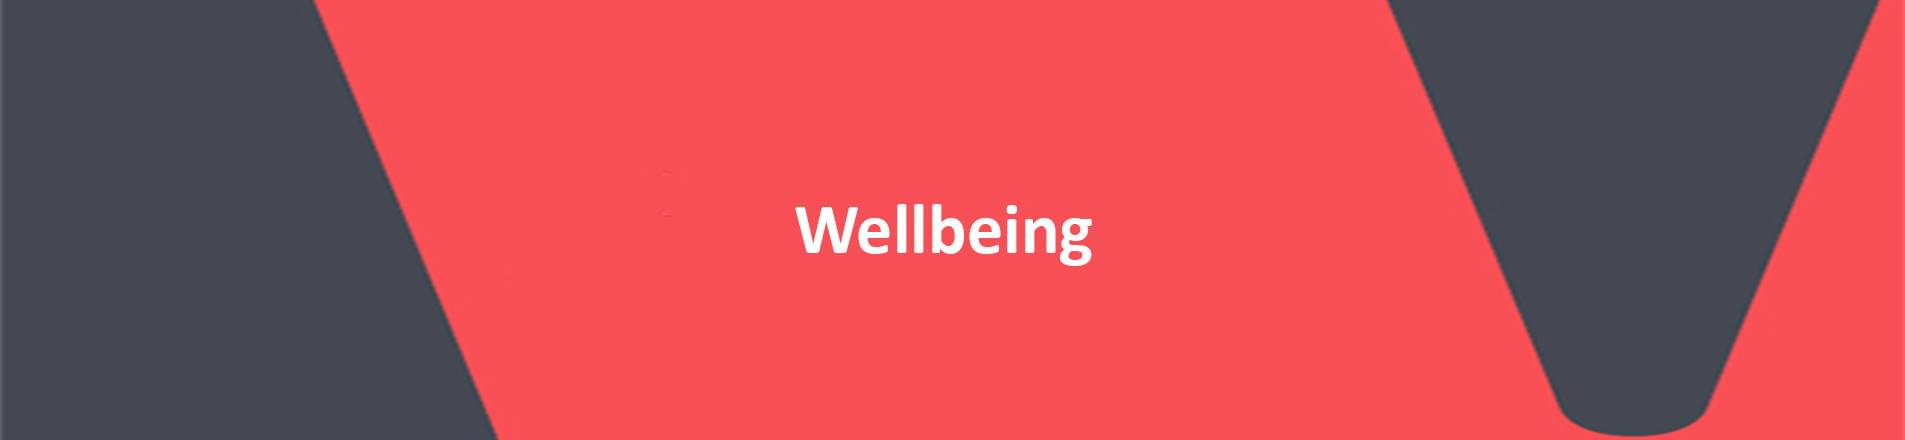 The word wellbeing  on red VERCIDA branded background.